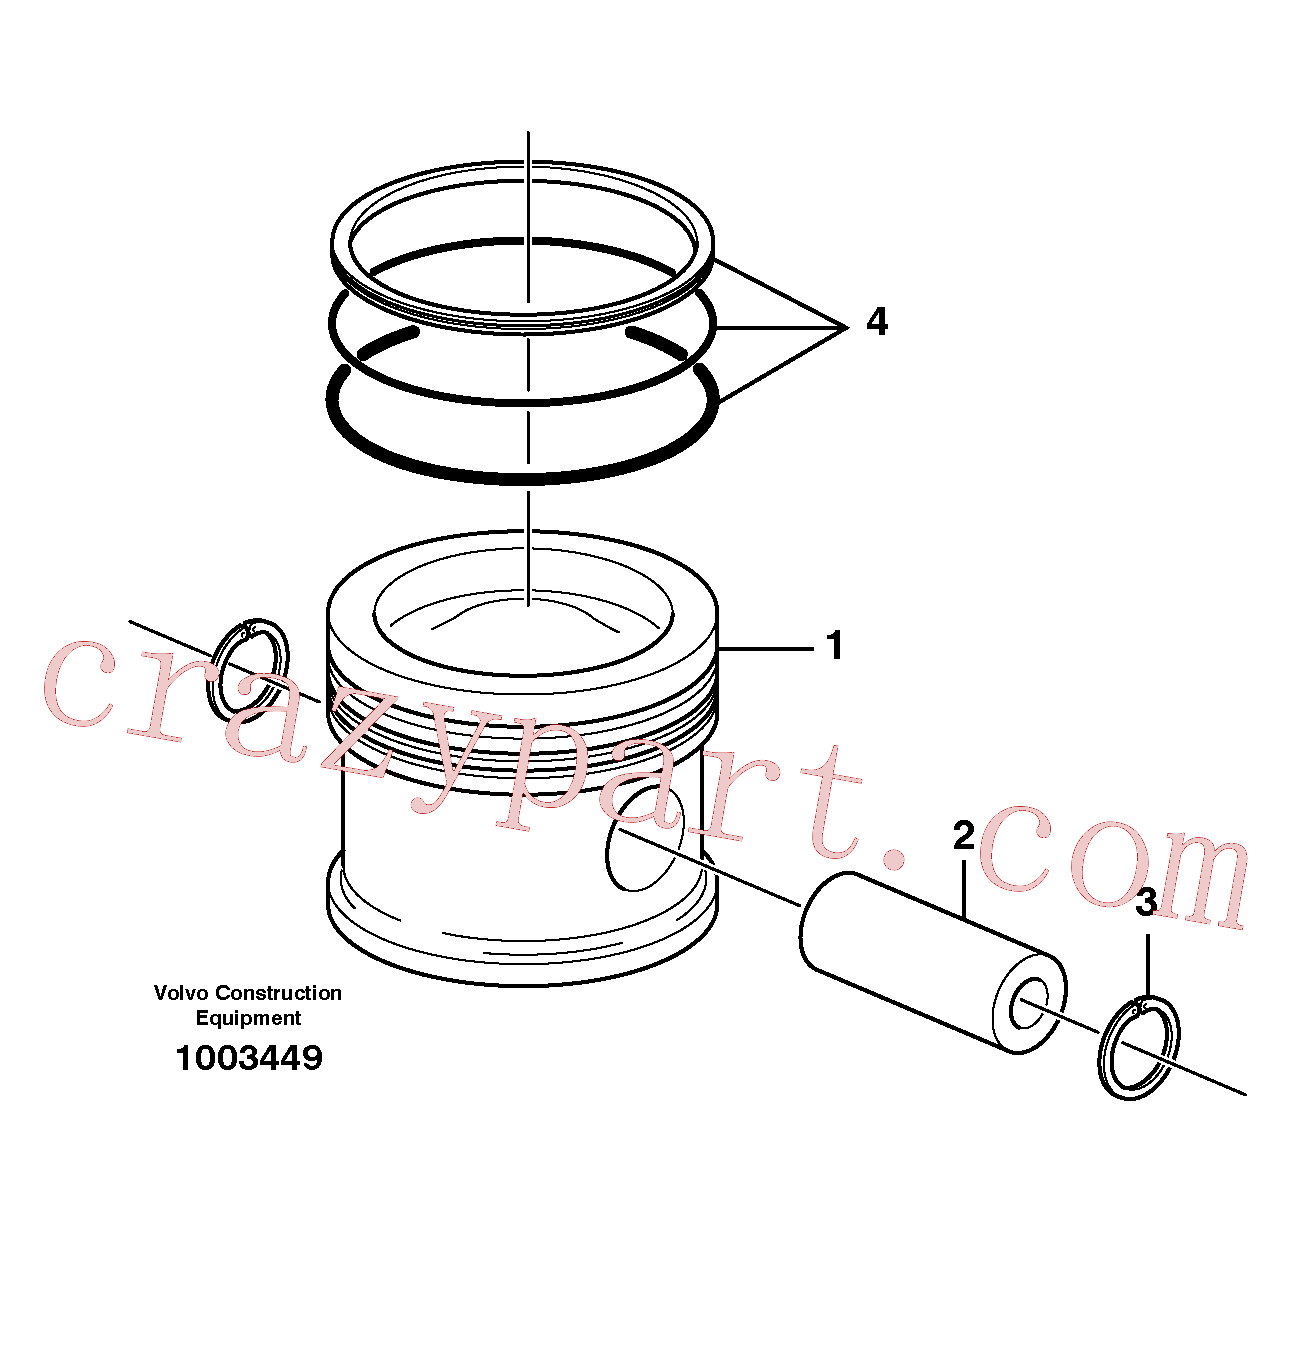 VOE914523 for Volvo Cylinder liner and piston, Pistons(1003449 assembly)